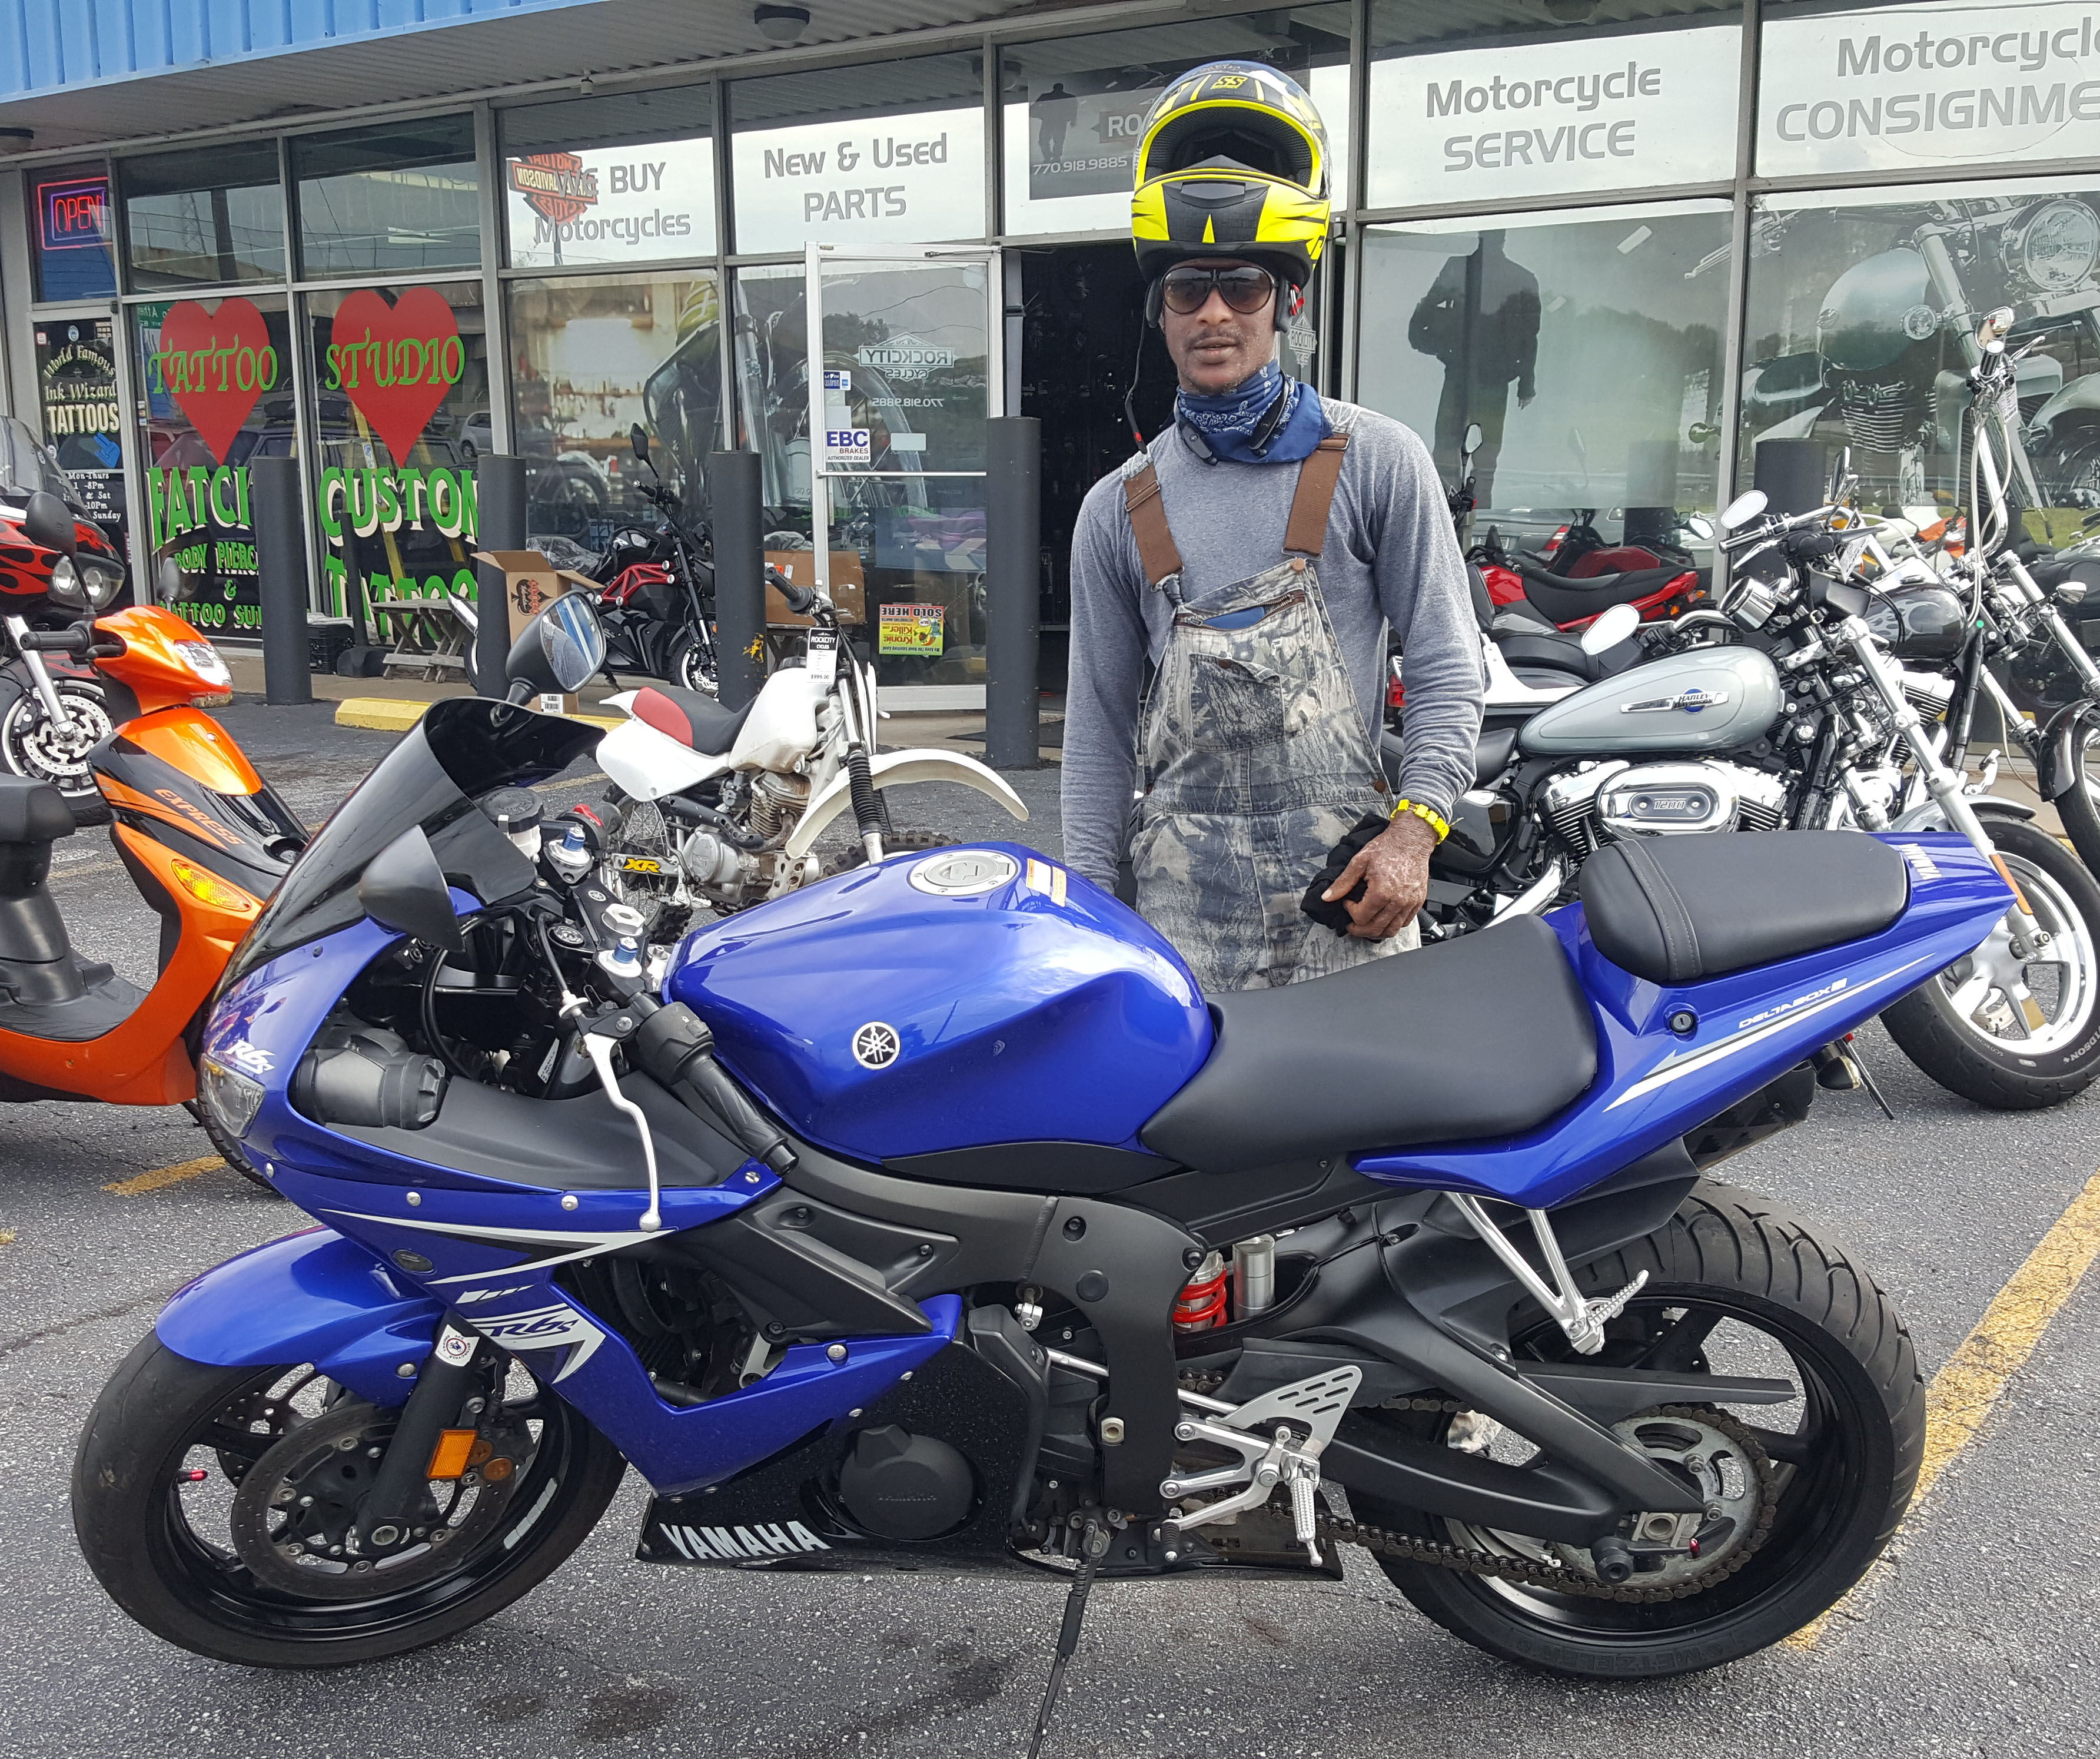 Andrew G. with his 2009 Yamaha YZF-R6S